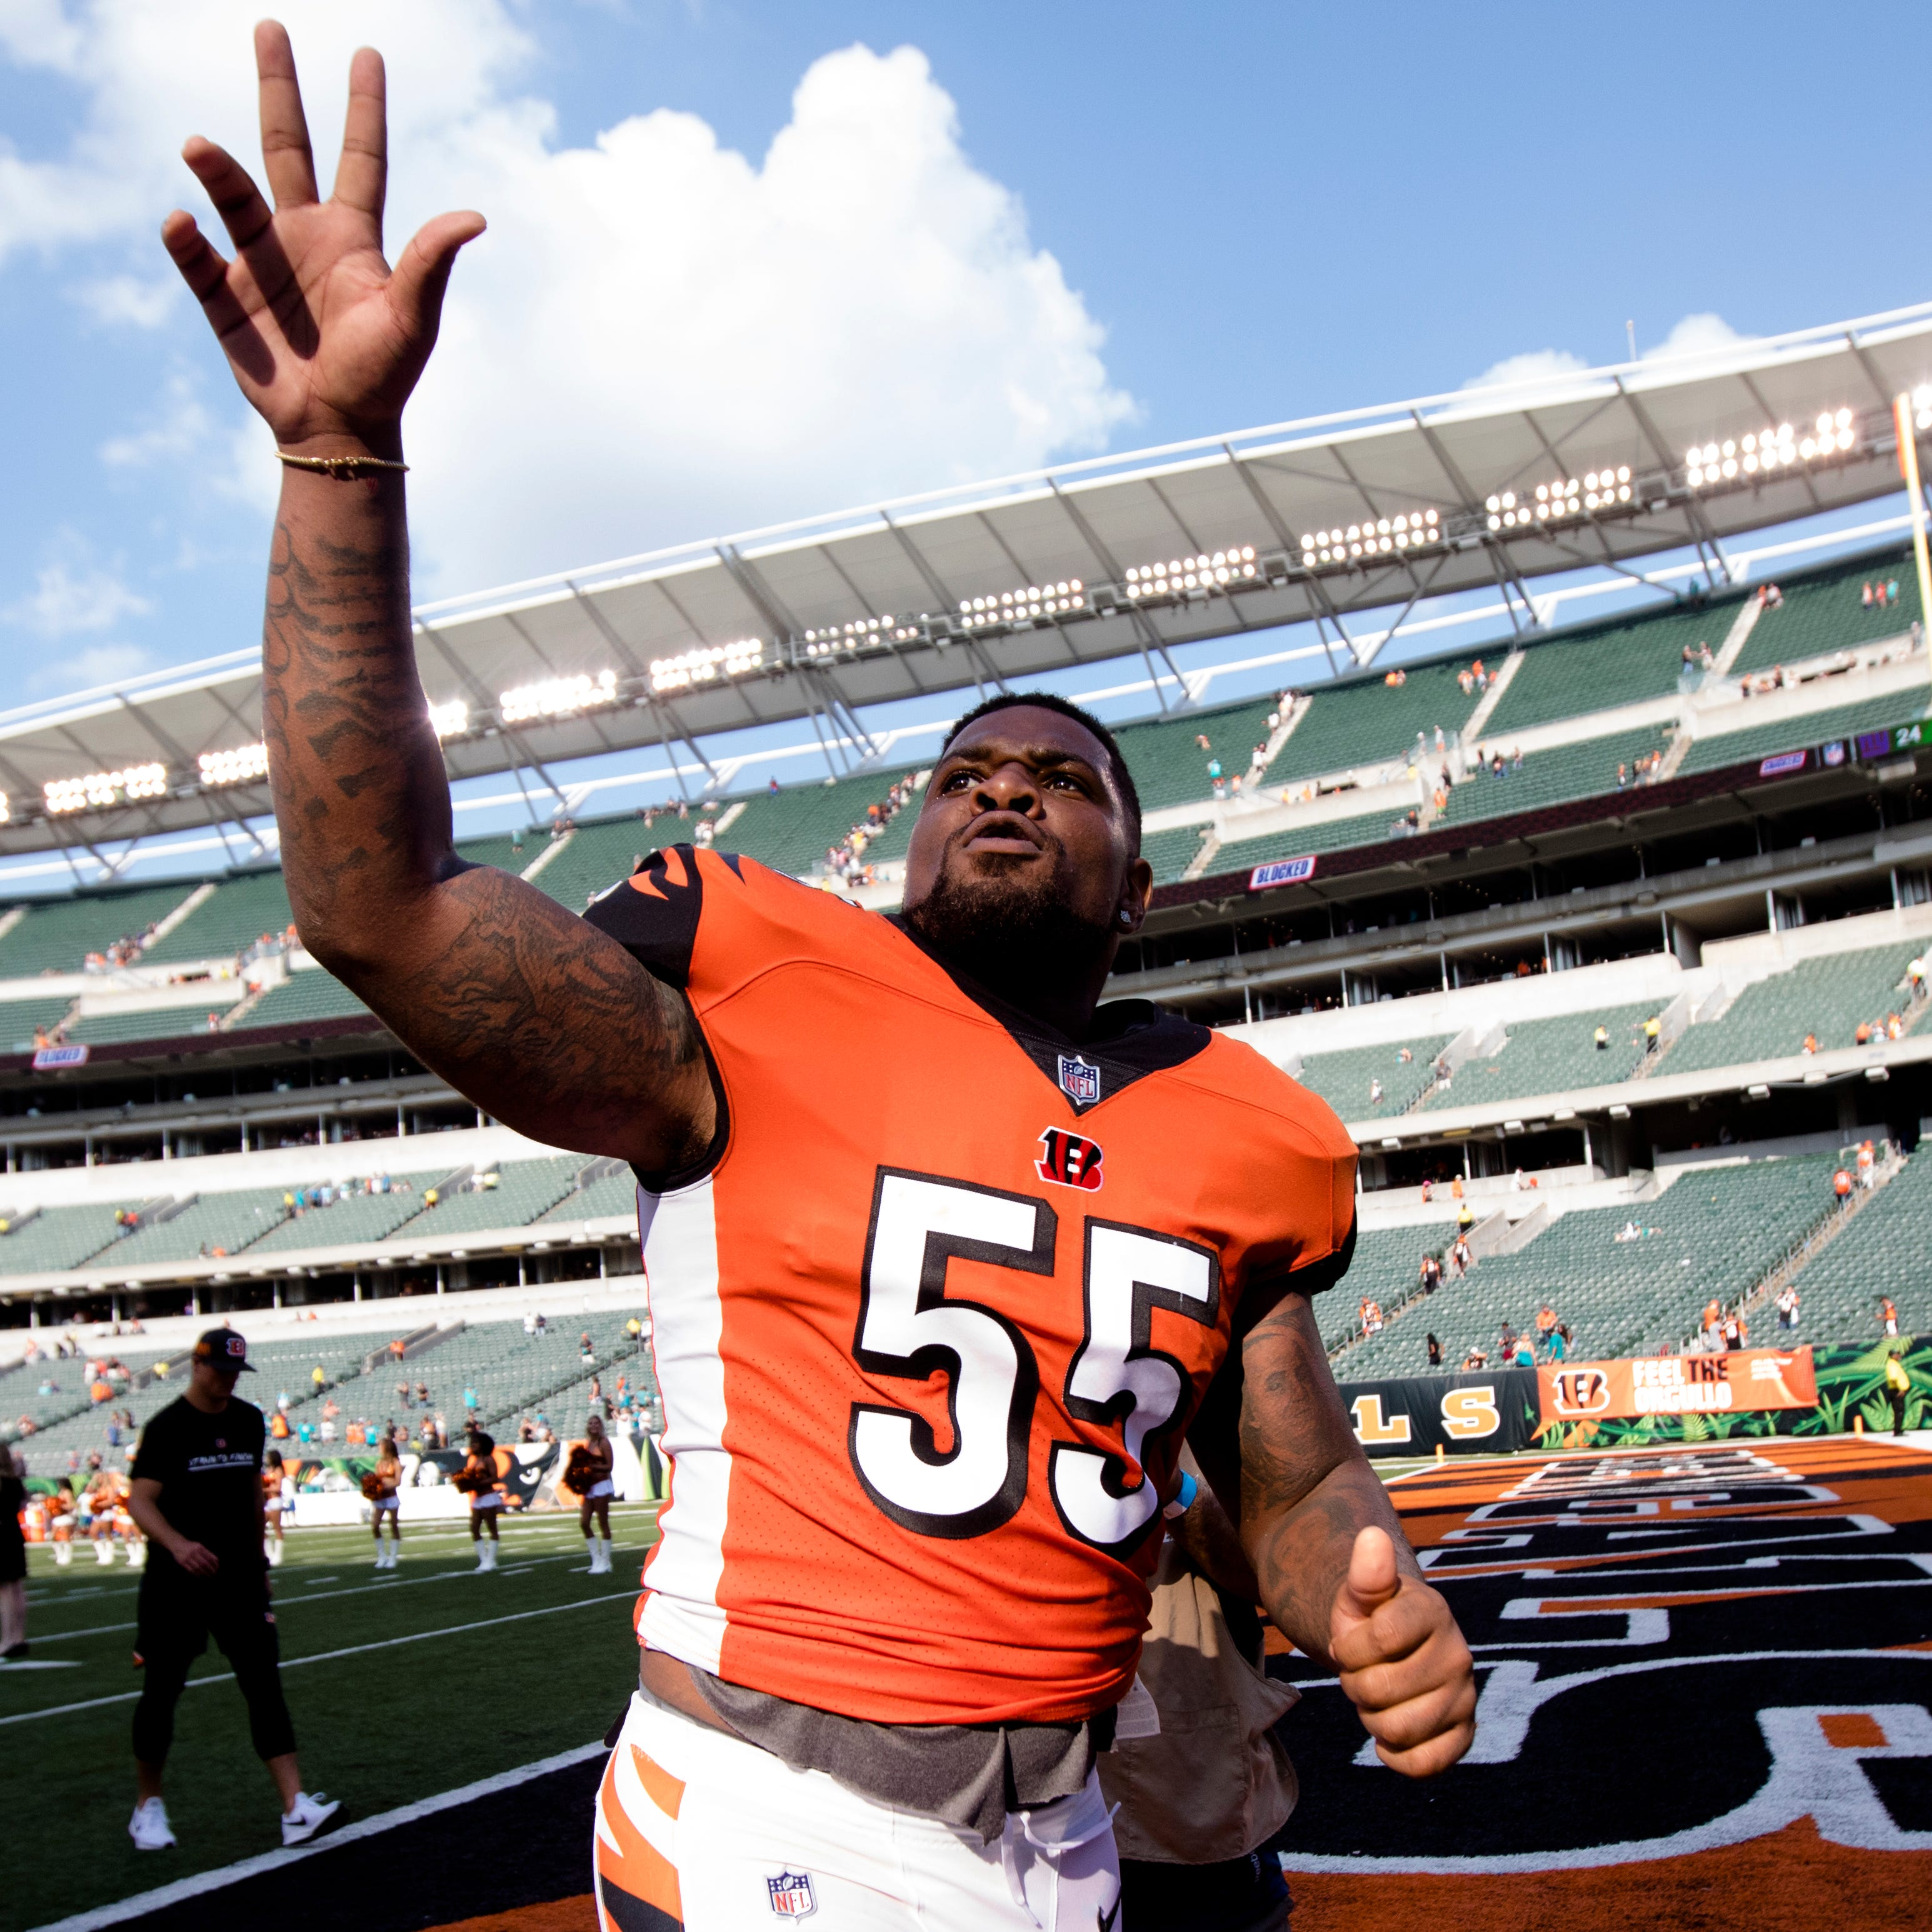 Cincinnati Bengals cut linebacker Vontaze Burfict after seven seasons